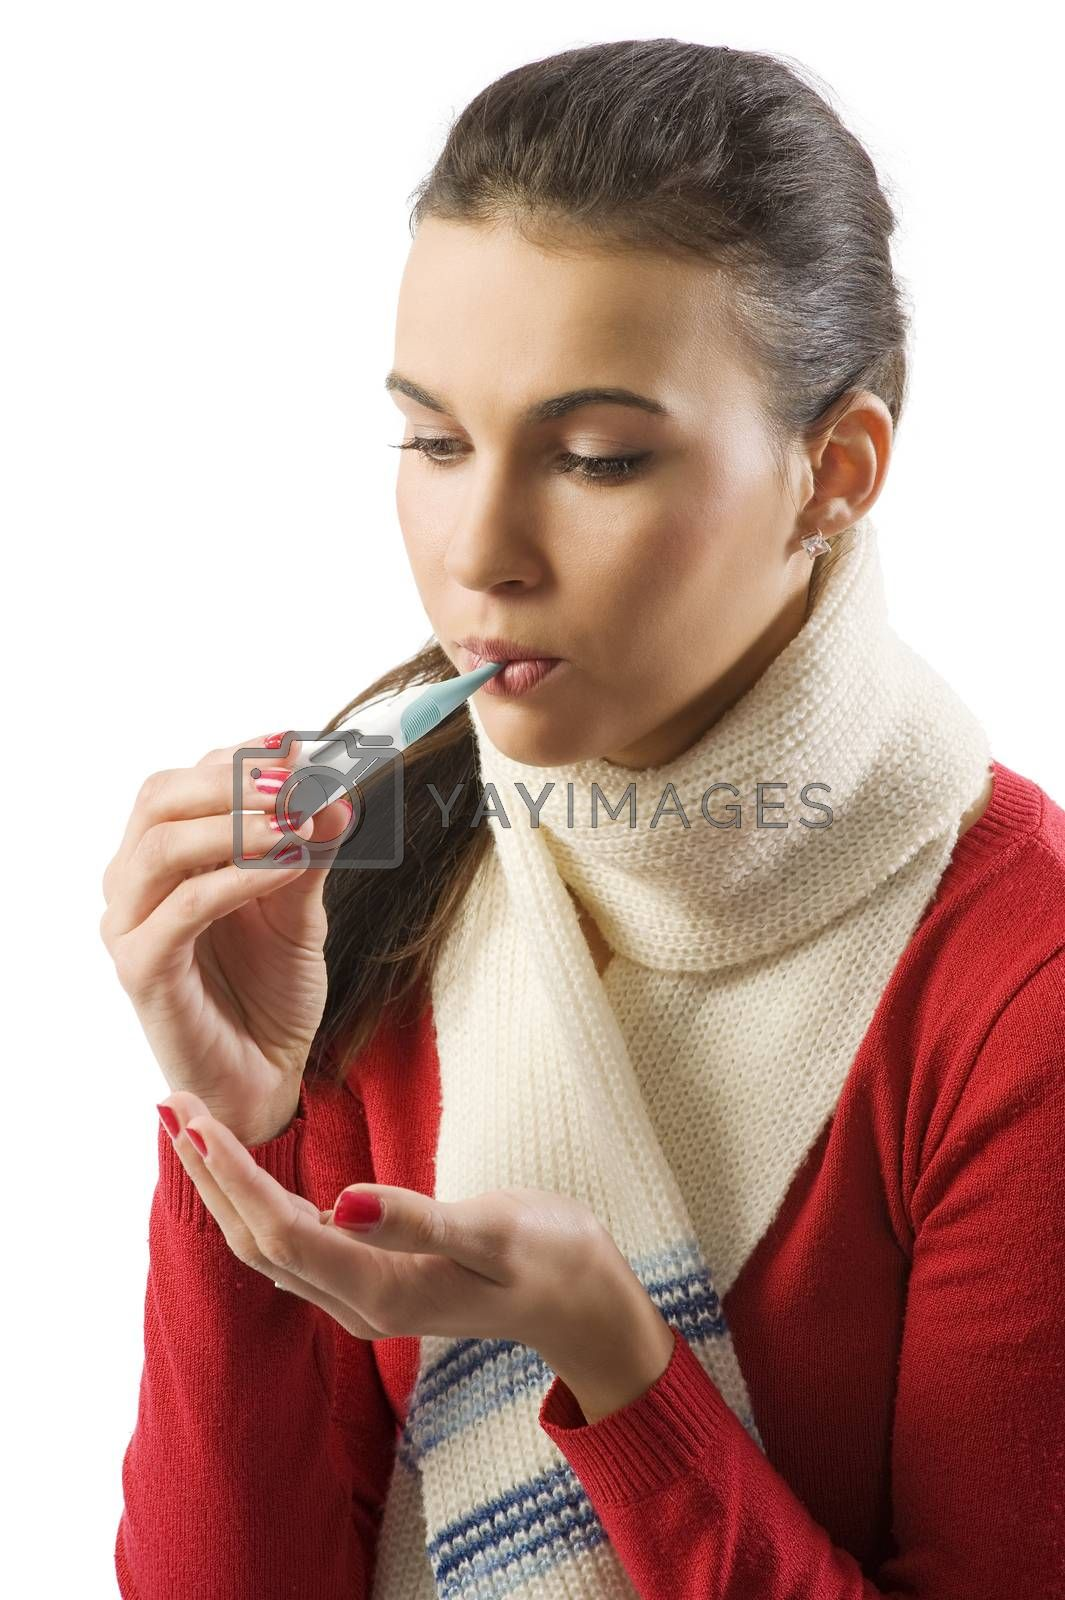 Royalty free image of getting the cold by fotoCD